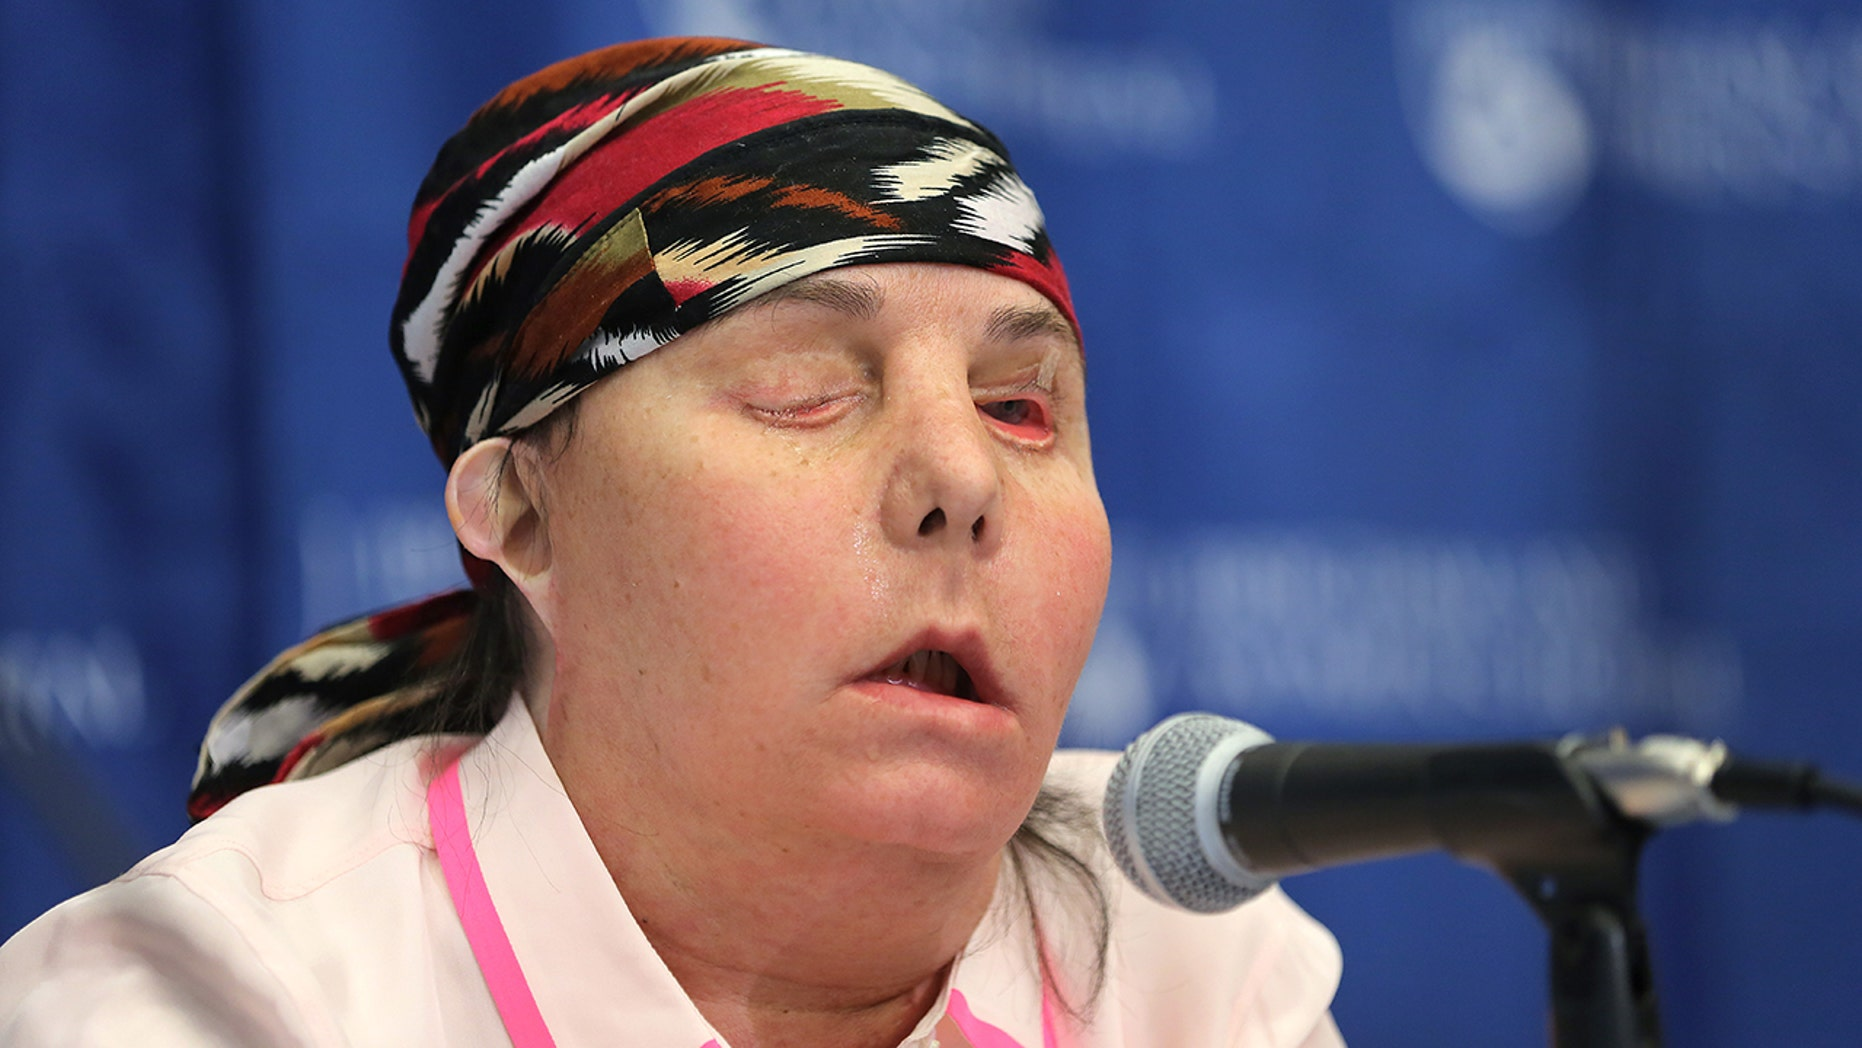 Carmen Blandin Tarleton speaks during a May 2013 press discussion during Brigham and Women's Hospital following her face transplant surgery.